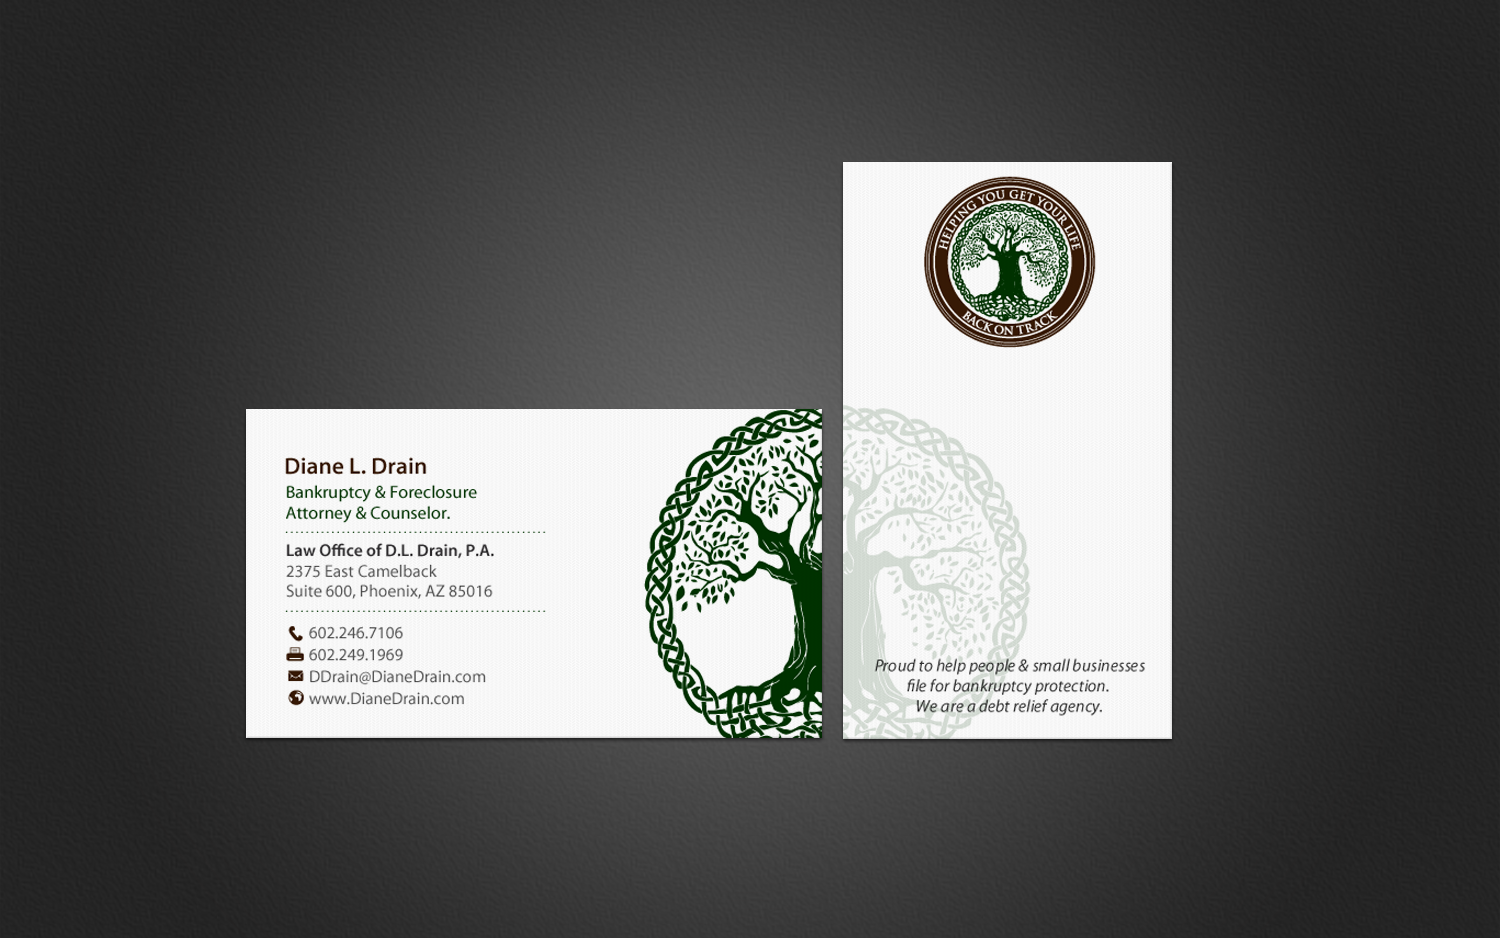 Traditional, Serious, Legal Business Card Design for Law Office of ...